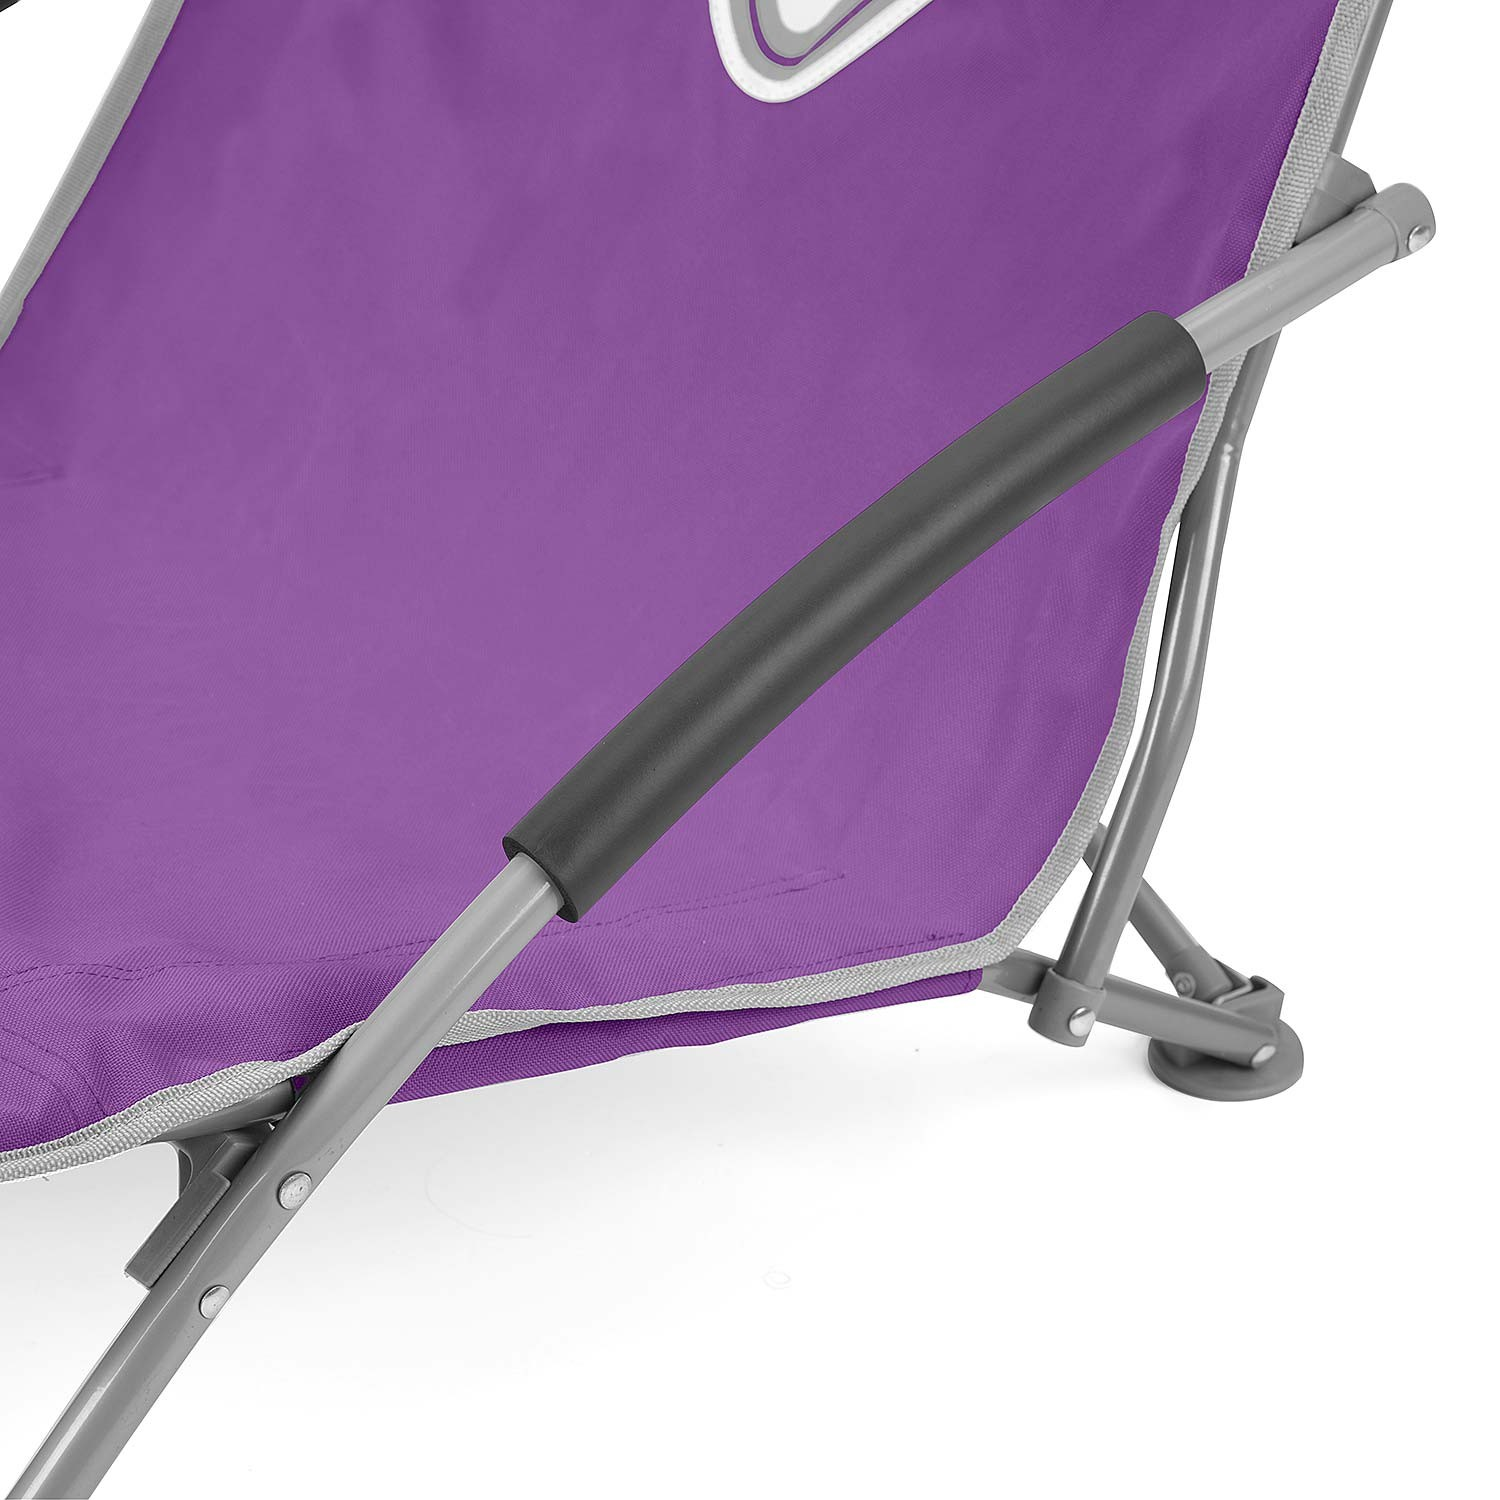 Volkswagen VW Basse Pliable Plage Chaise Camping Pêche Léger Portable Sac